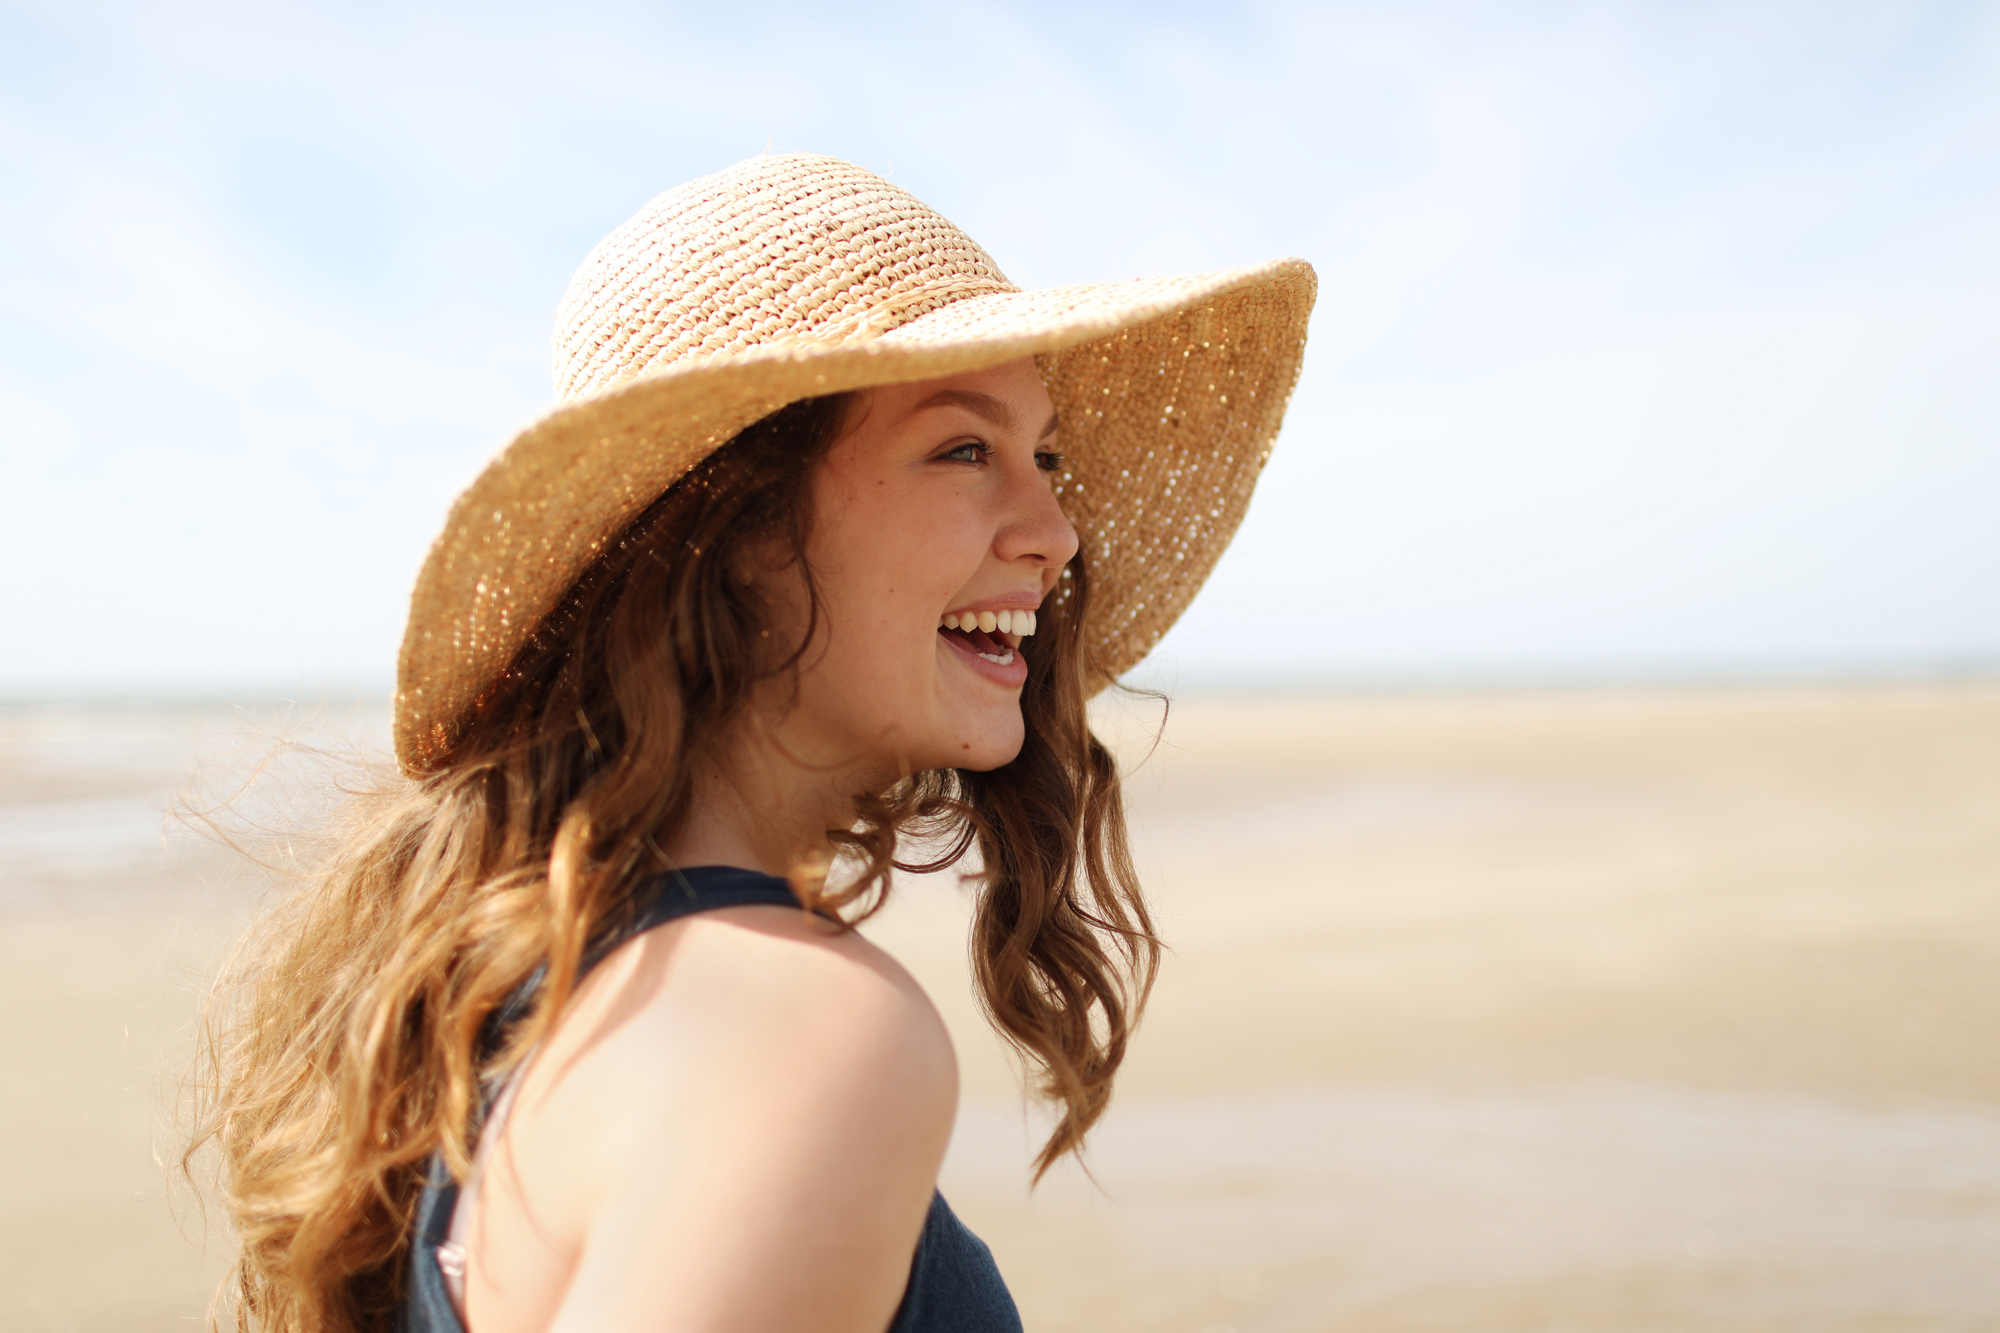 woman outdoors smiling in sun hat